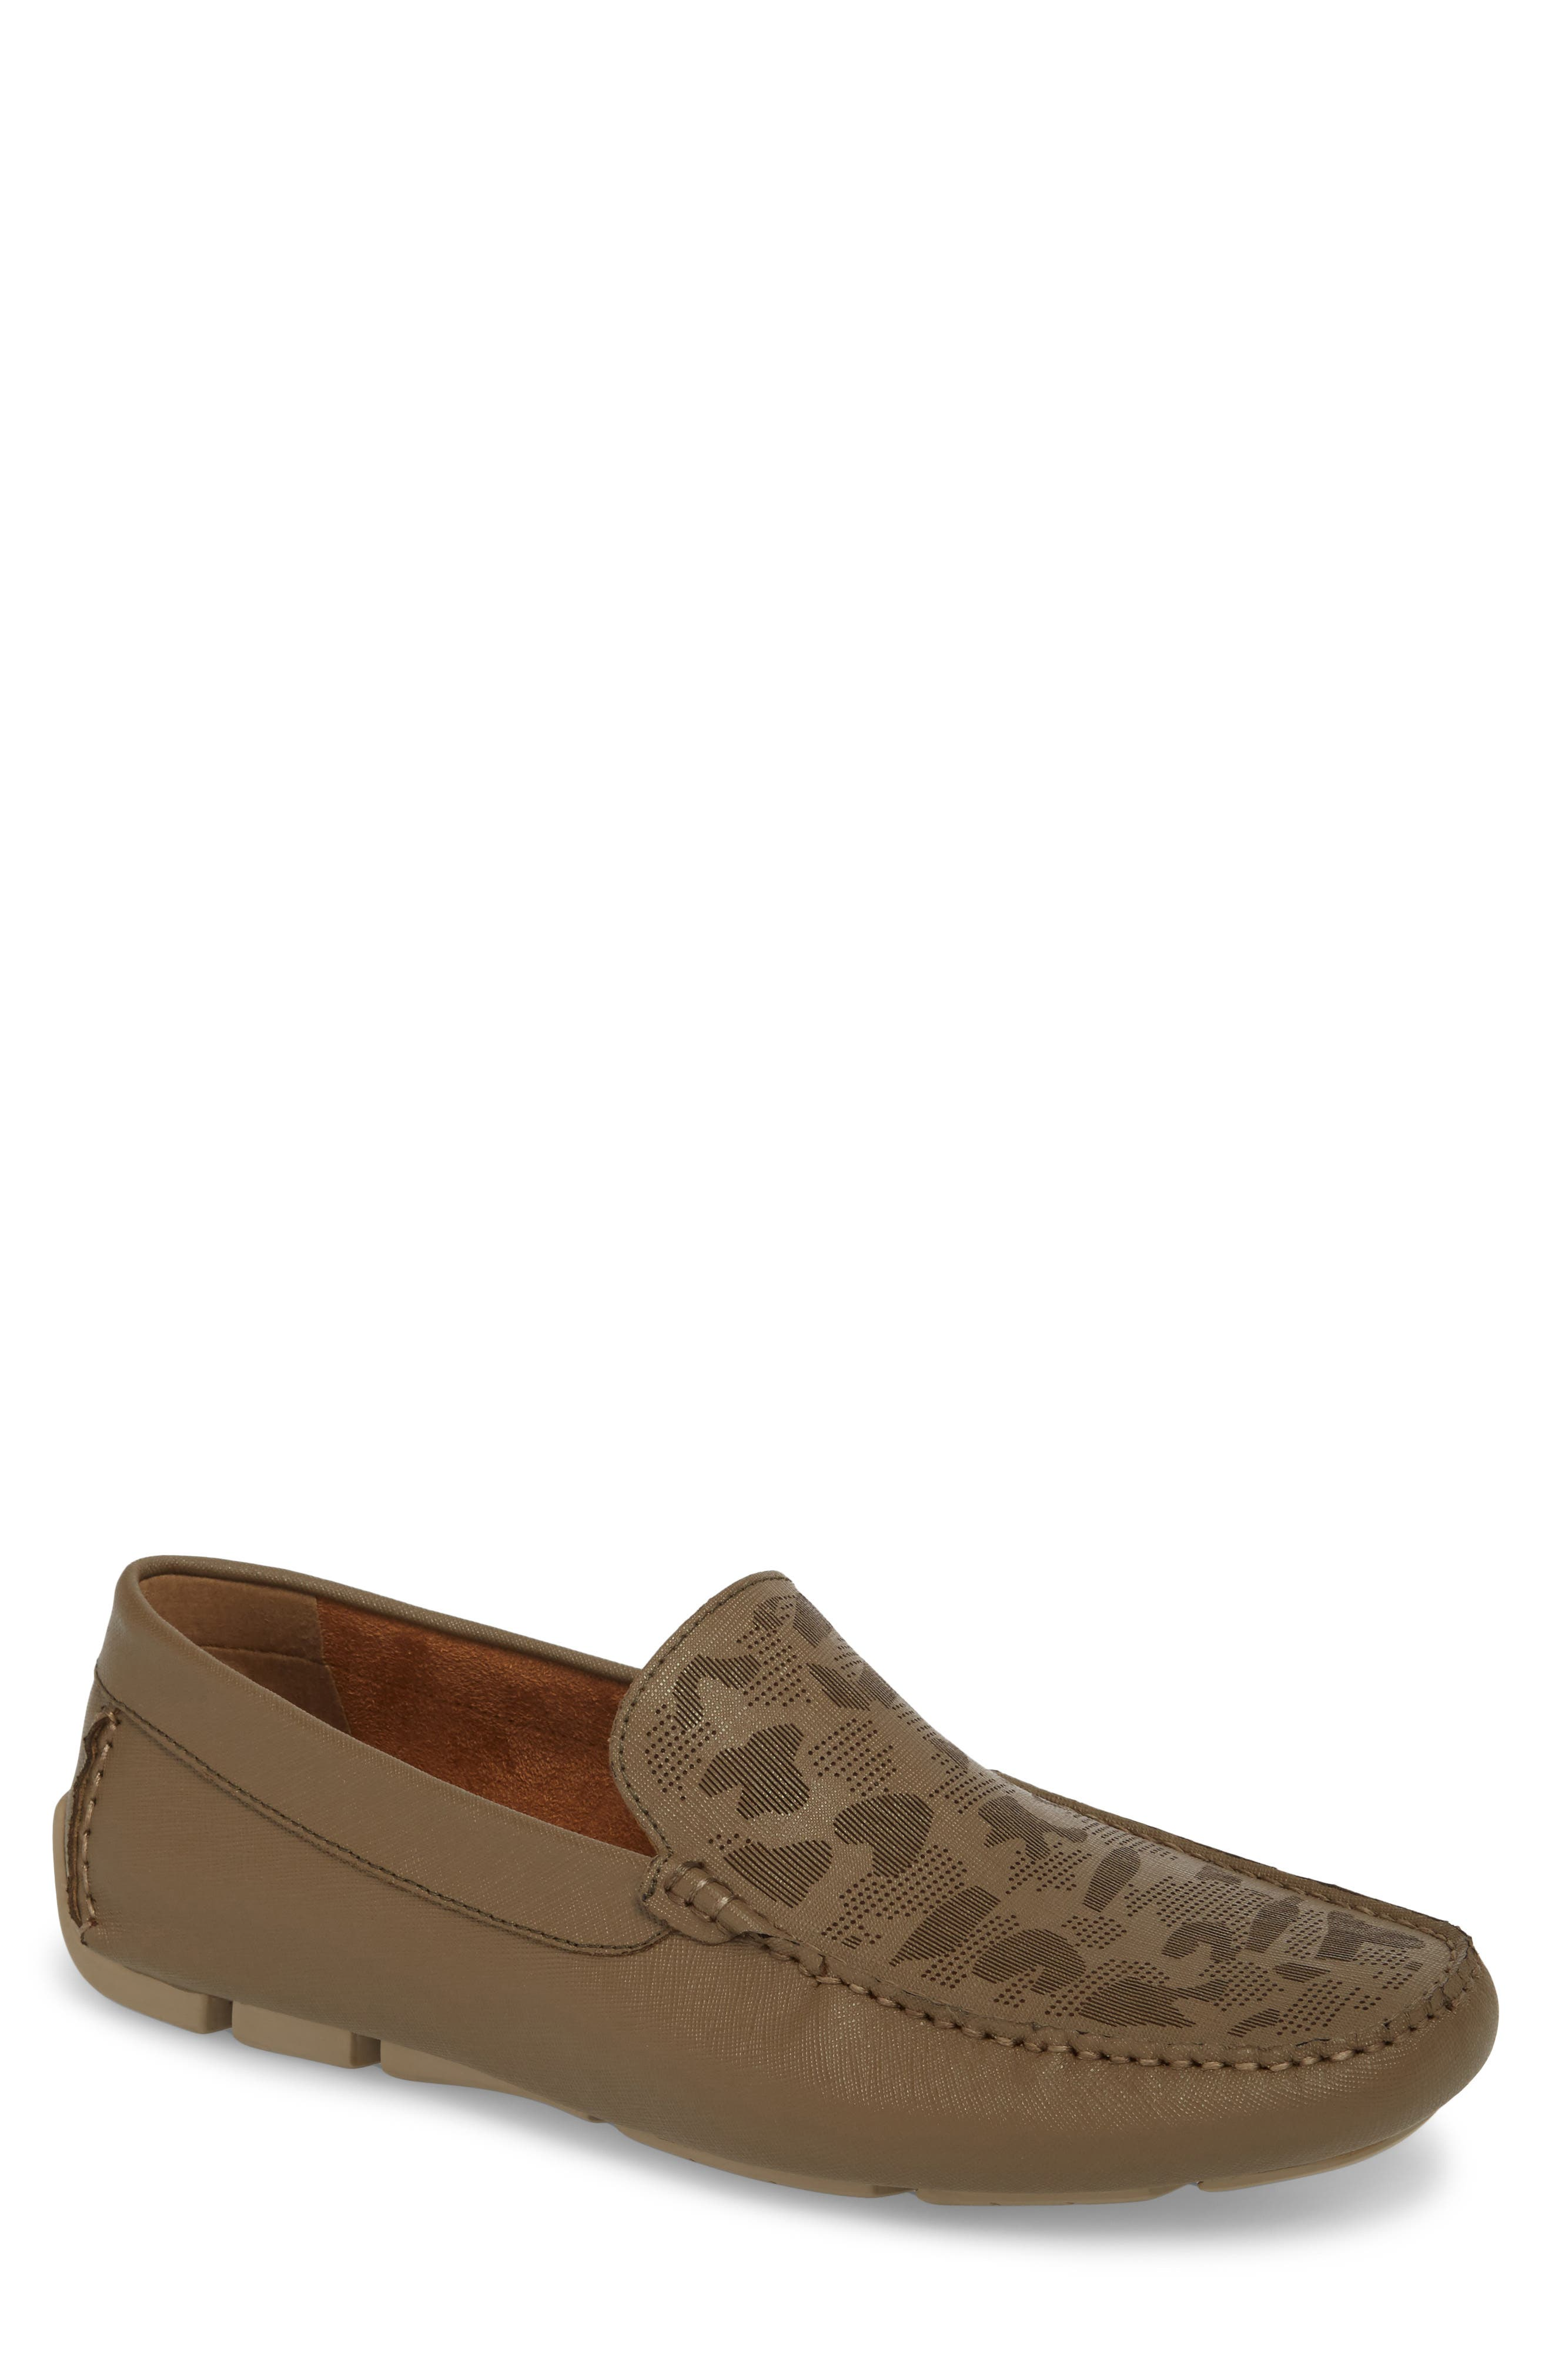 Theme Song Driving Shoe,                             Main thumbnail 1, color,                             Taupe Leather